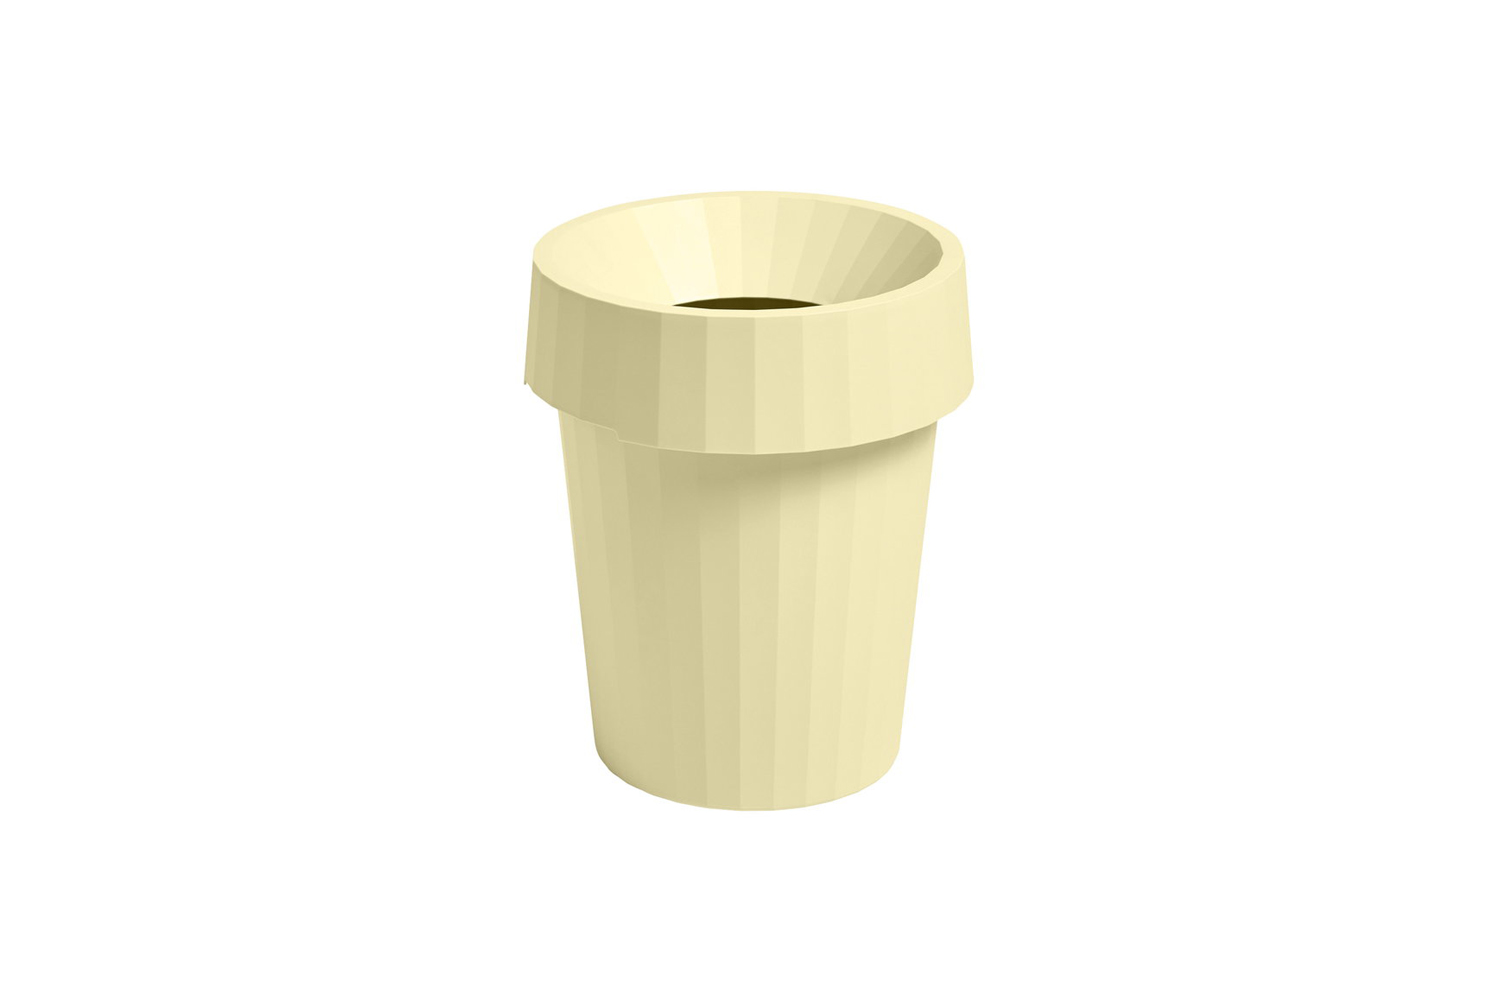 The HAY Shade Bin in Soft Yellow is $37.40 at Finnish Design Shop.